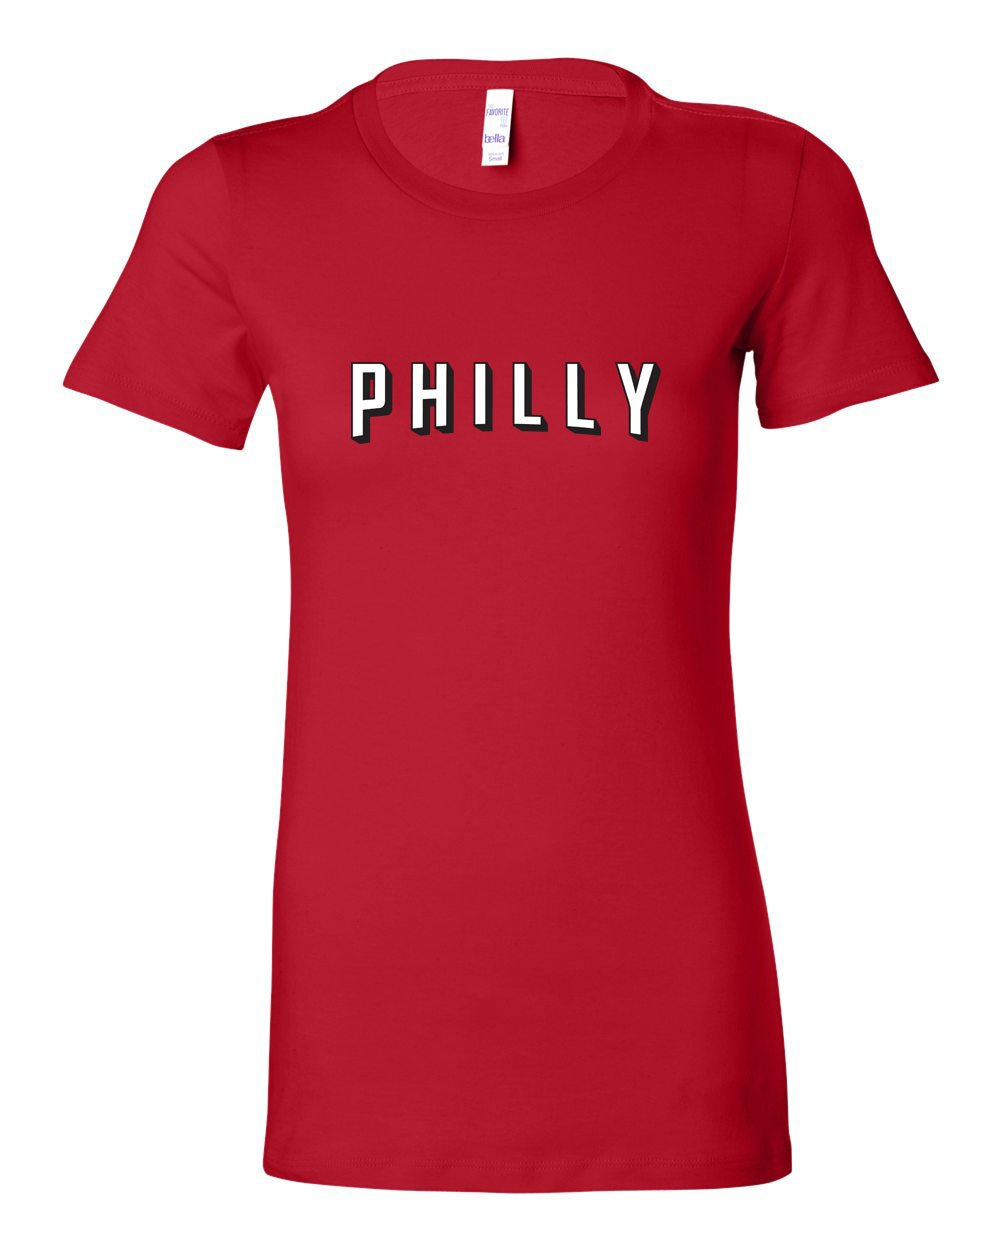 Philly-Flix LADIES Junior-Fit T-Shirt